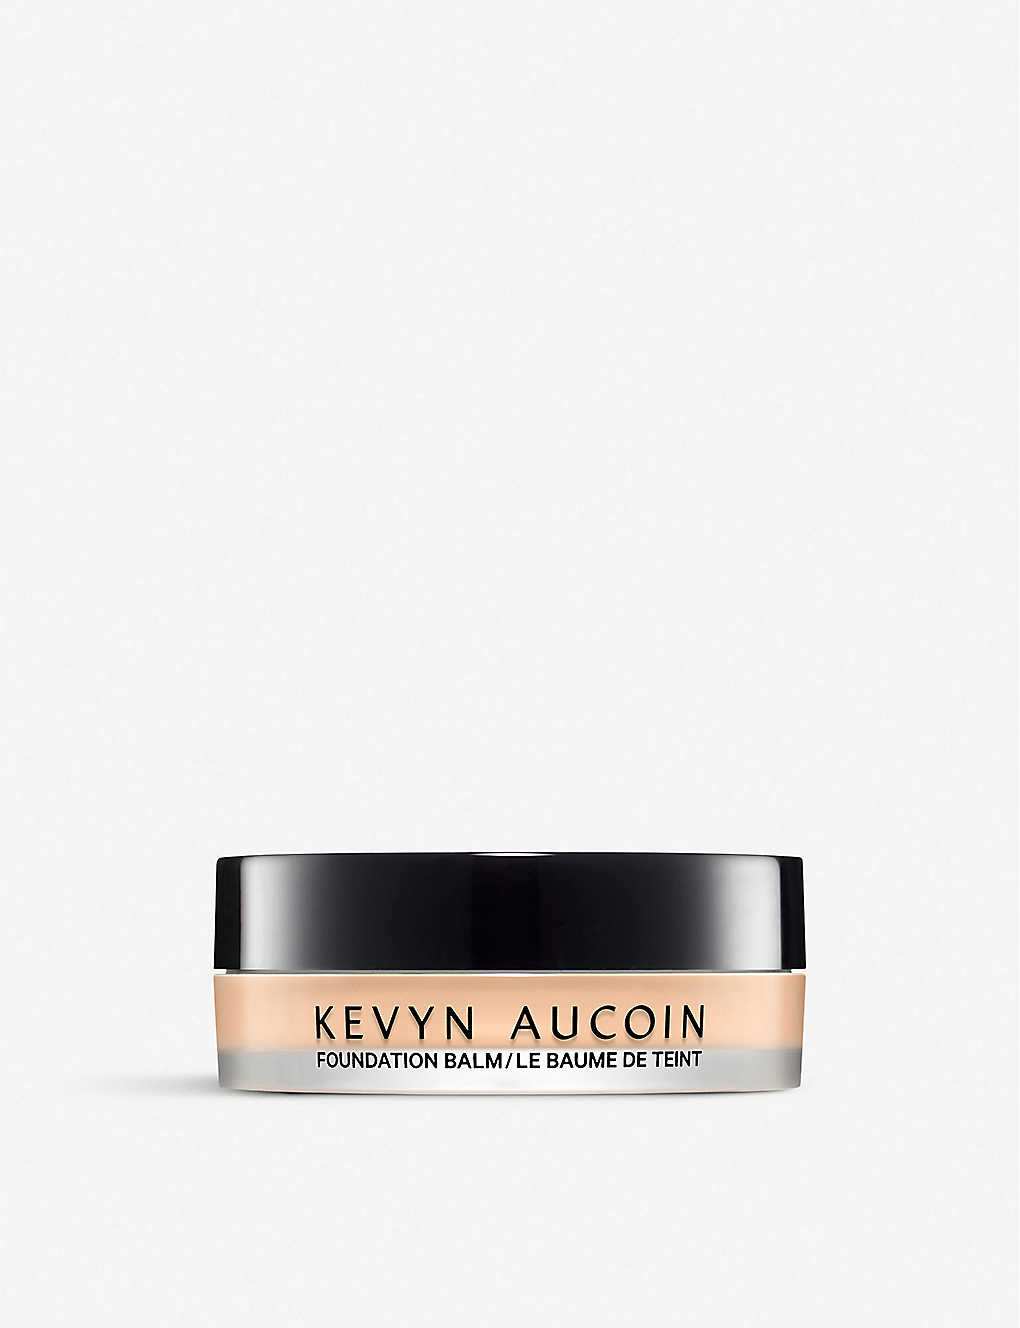 KEVYN AUCOIN: Foundation Balm 20.7ml